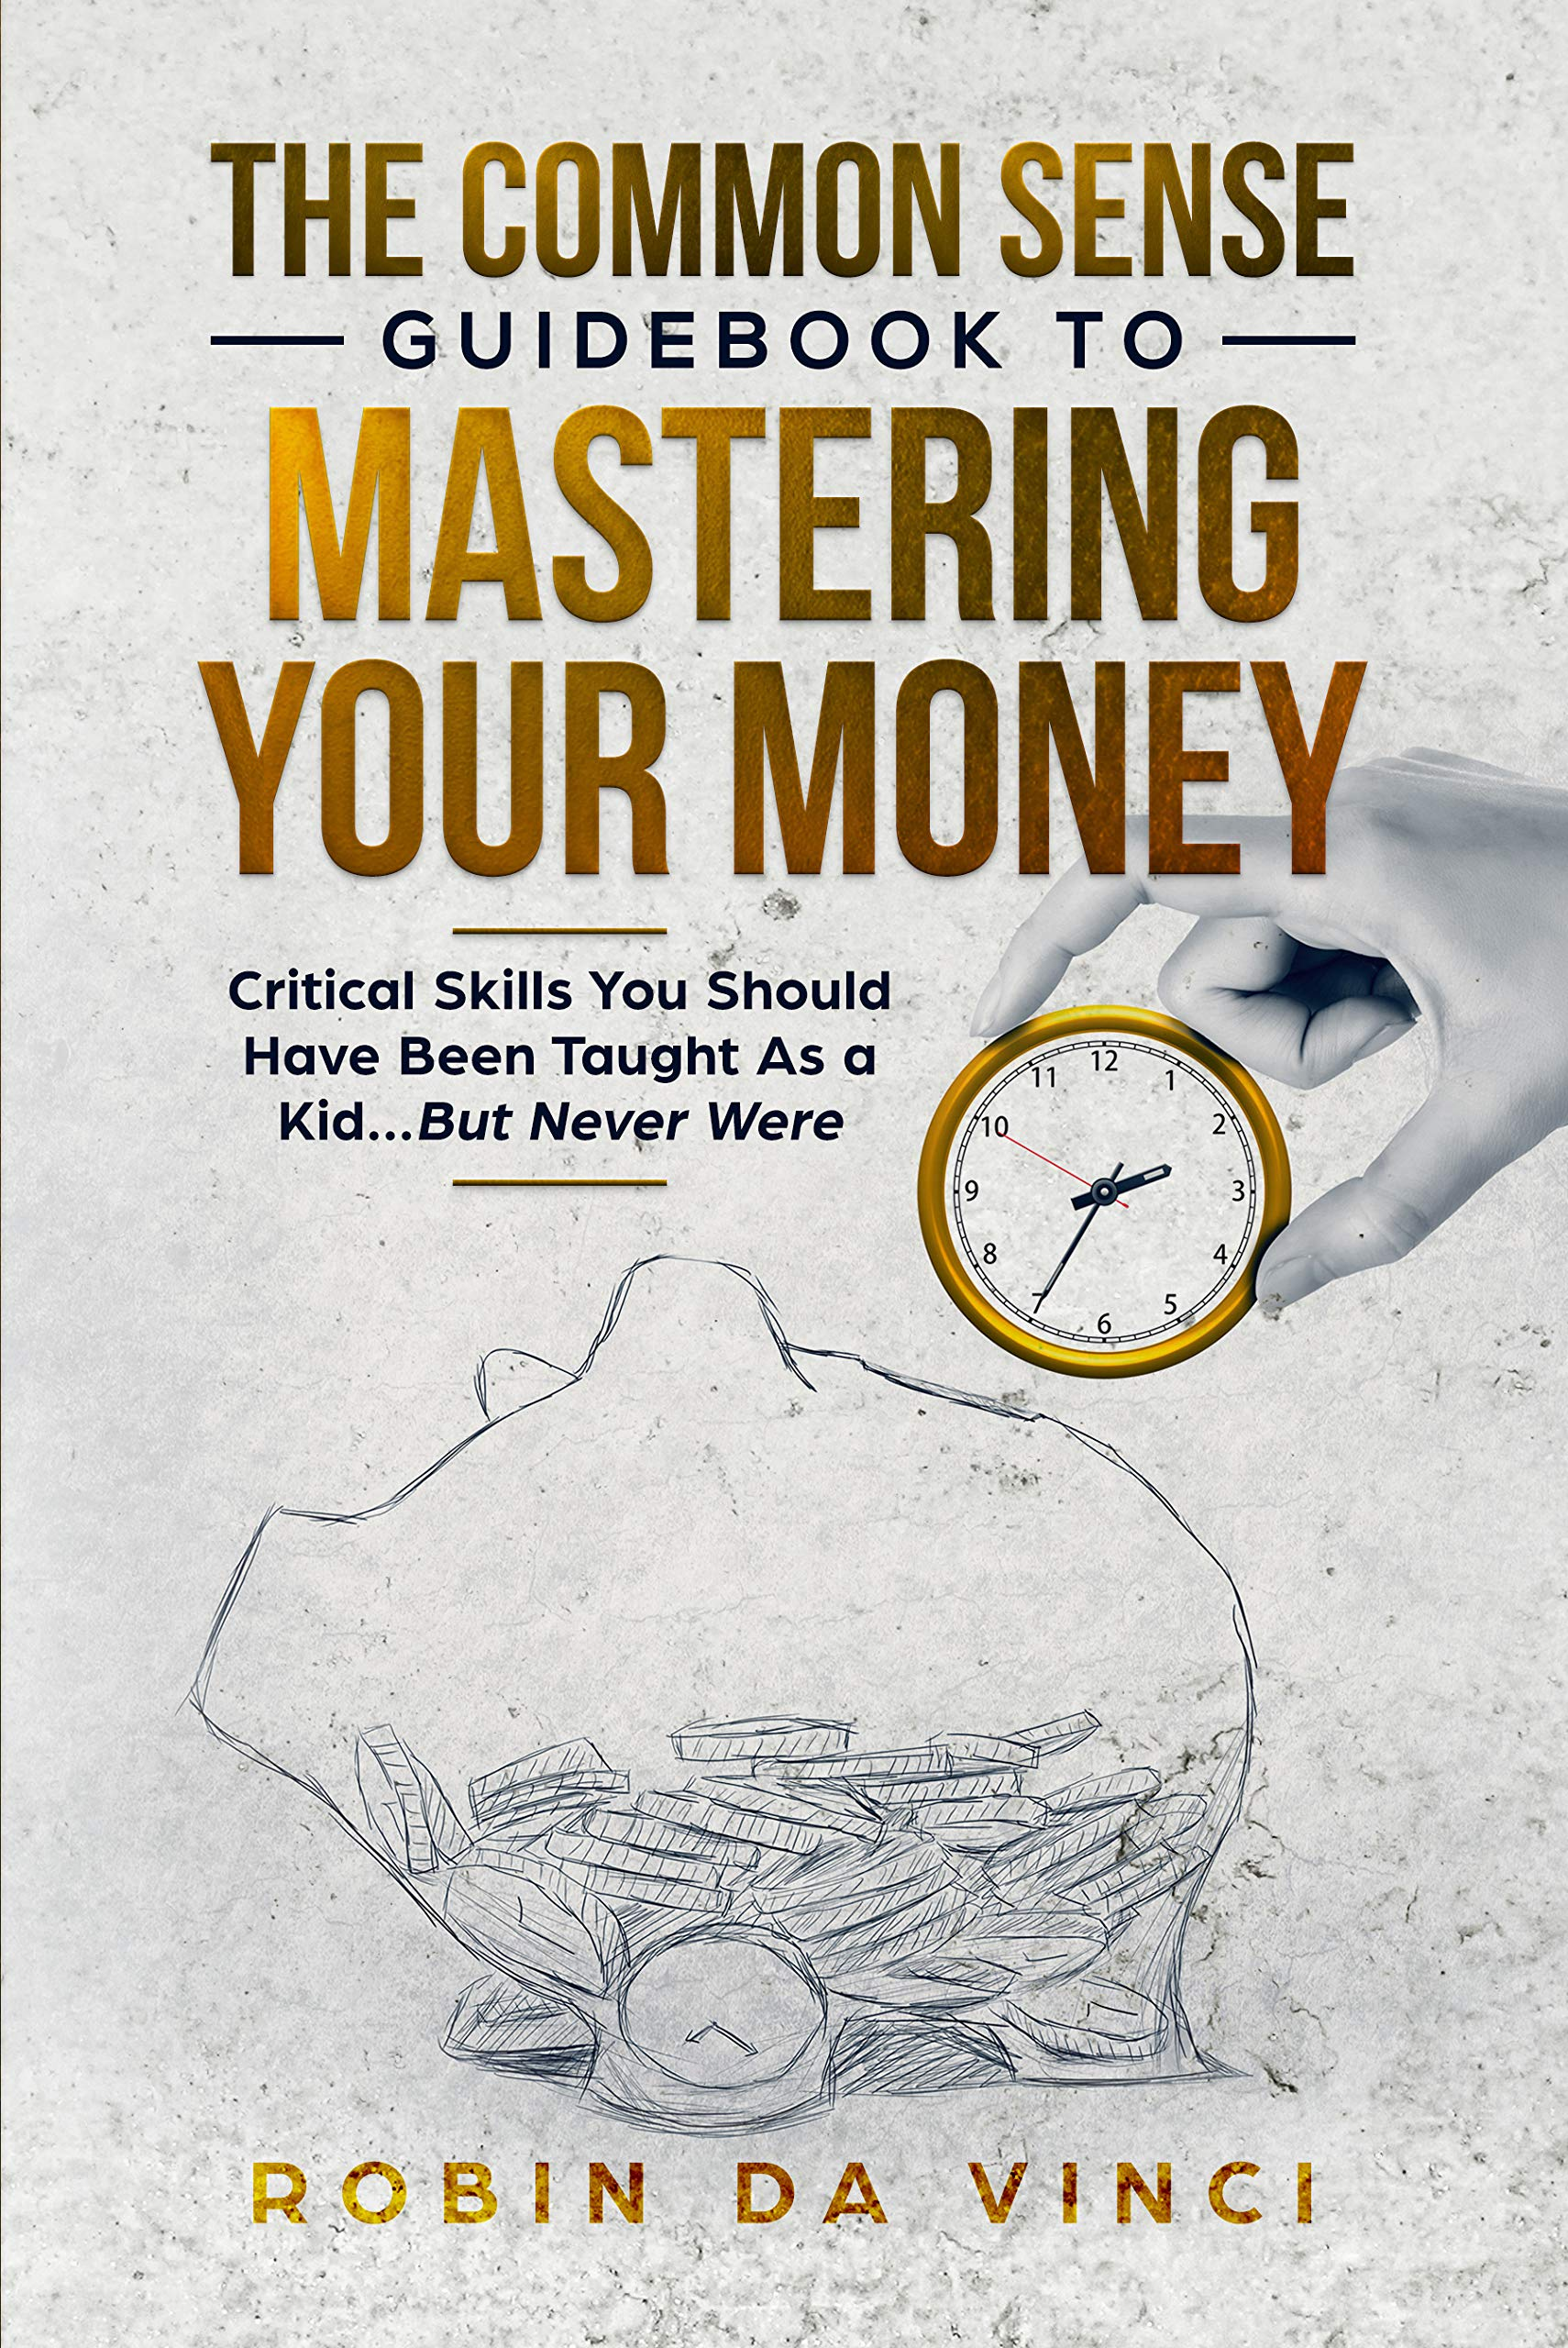 The Common Sense Guidebook to Mastering Your Money: Critical Skills You Should Have Been Taught As a Kid...But Never Were